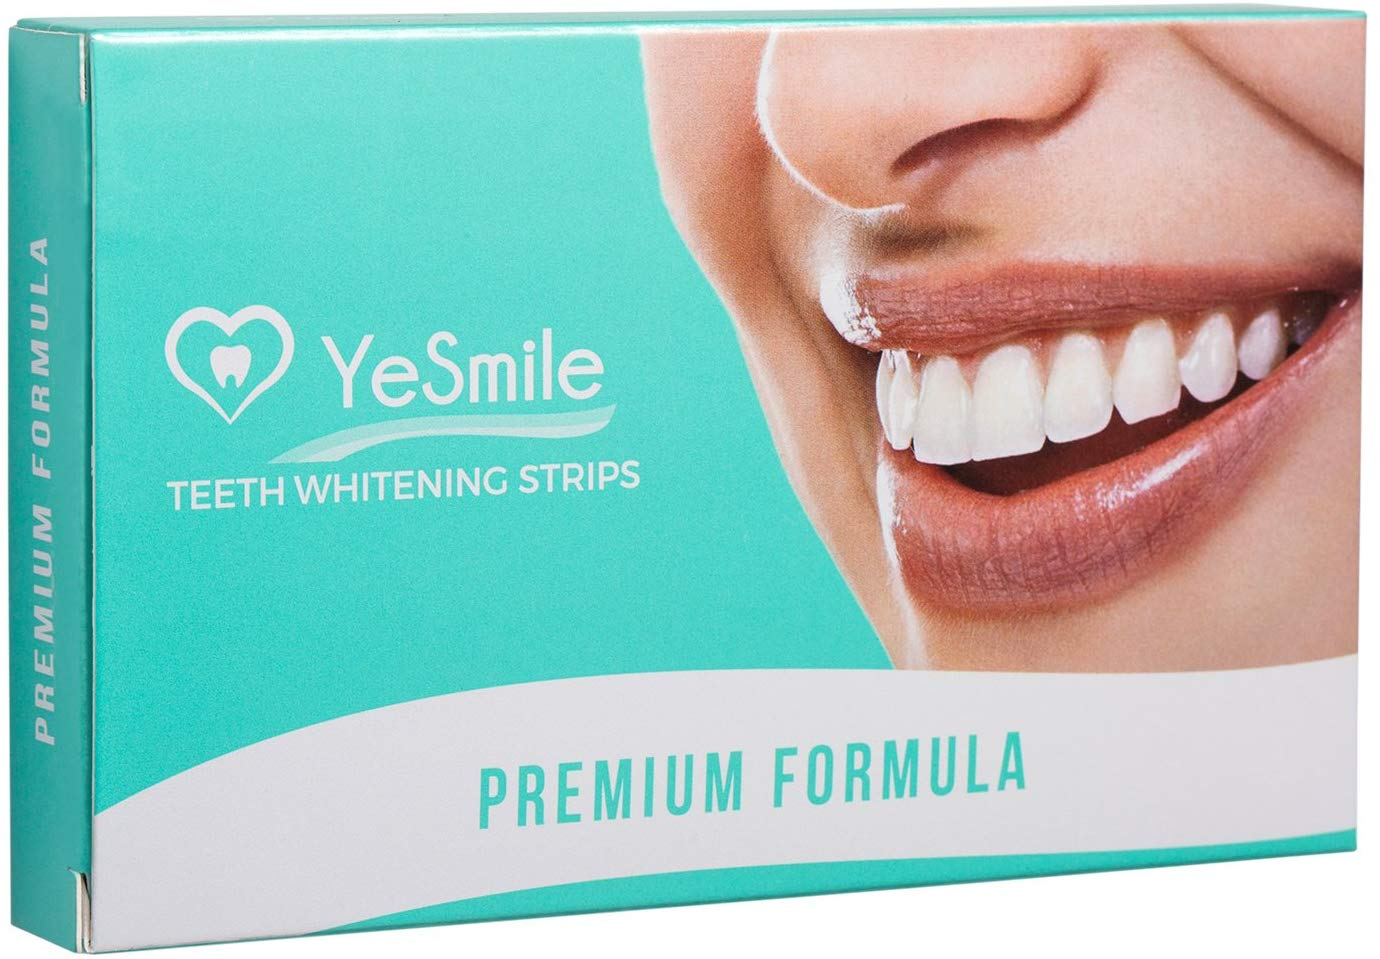 58% off Teeth Whitening Strips